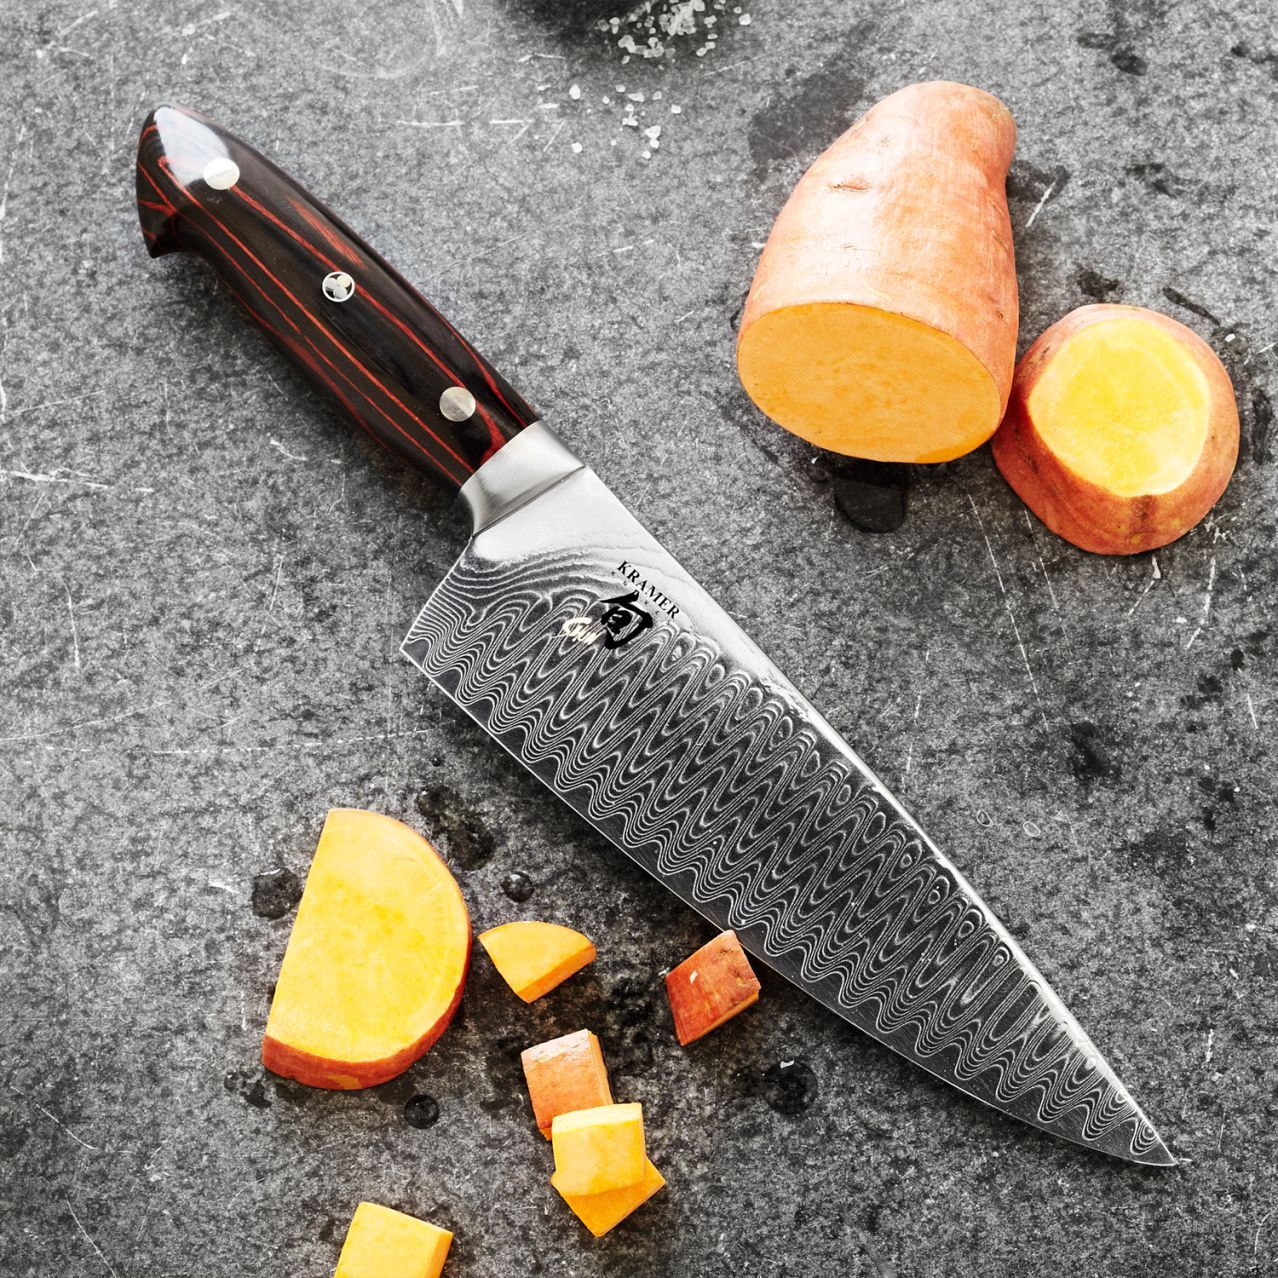 Shuns Kitchen: Shun Bob Kramer Chef's Knife, 6""